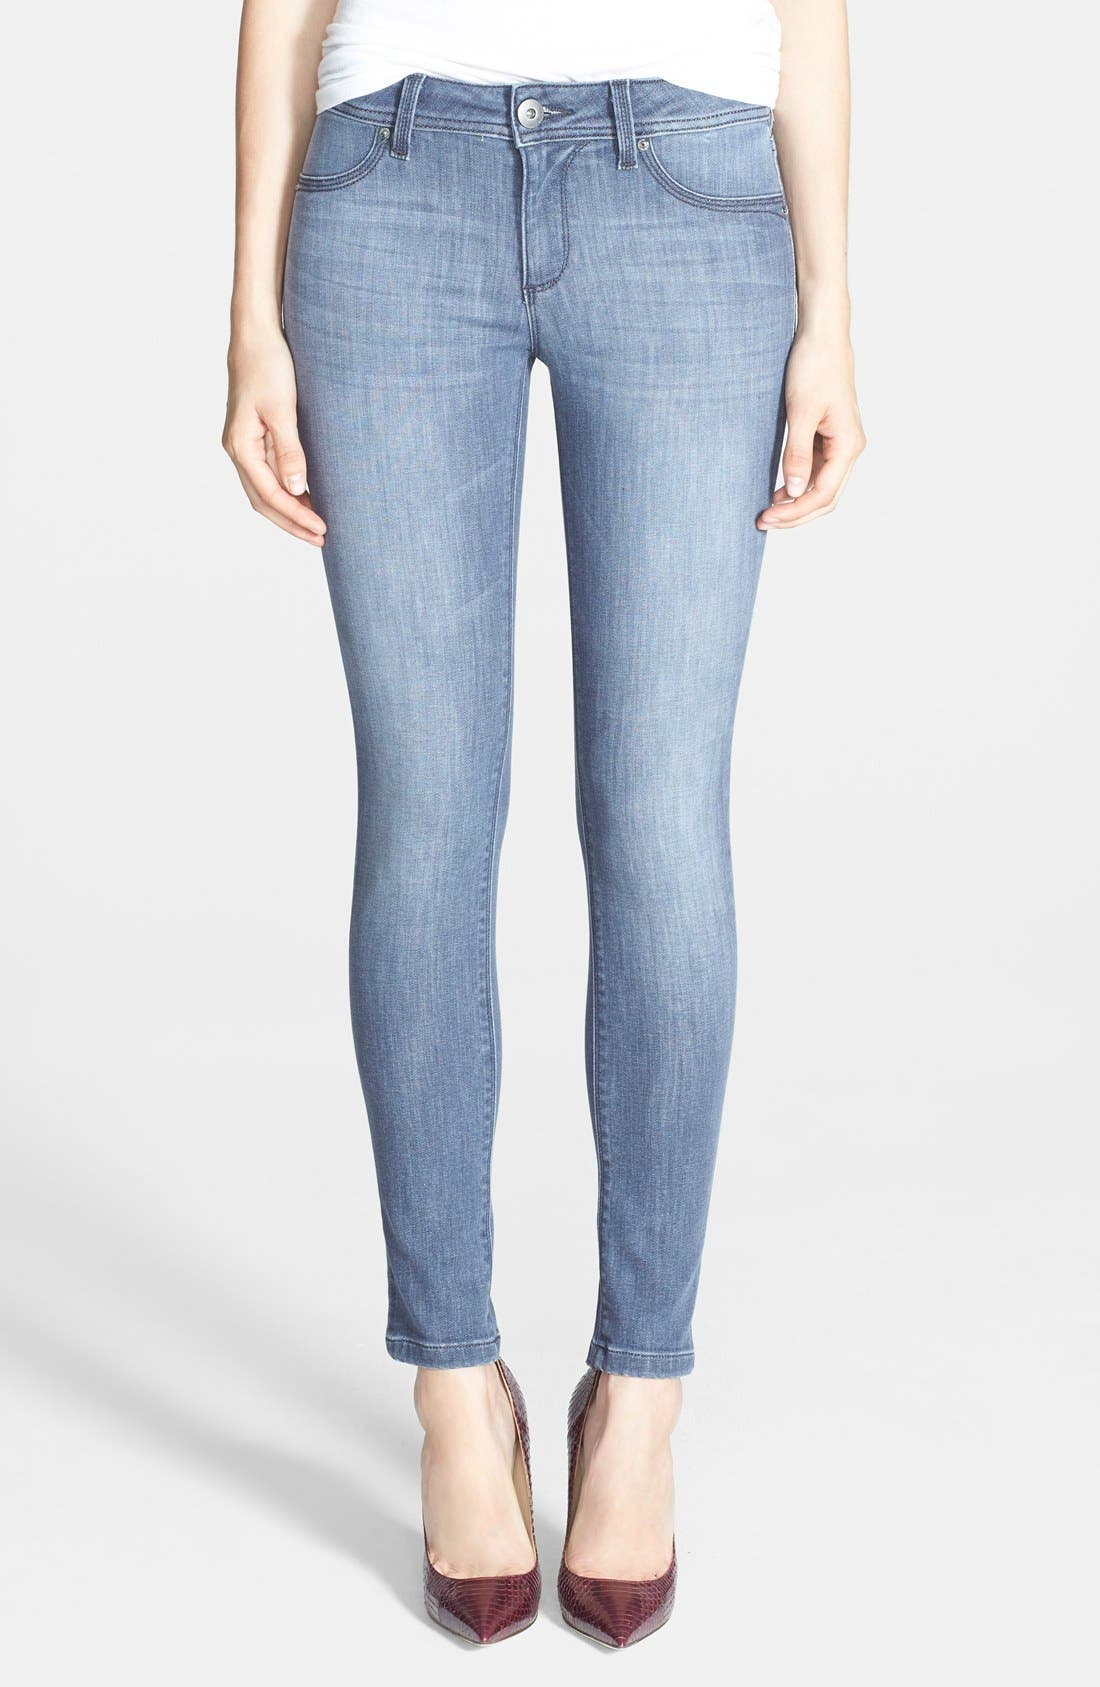 Main Image - DL1961 'Emma' Power Legging Jeans (Pierce)